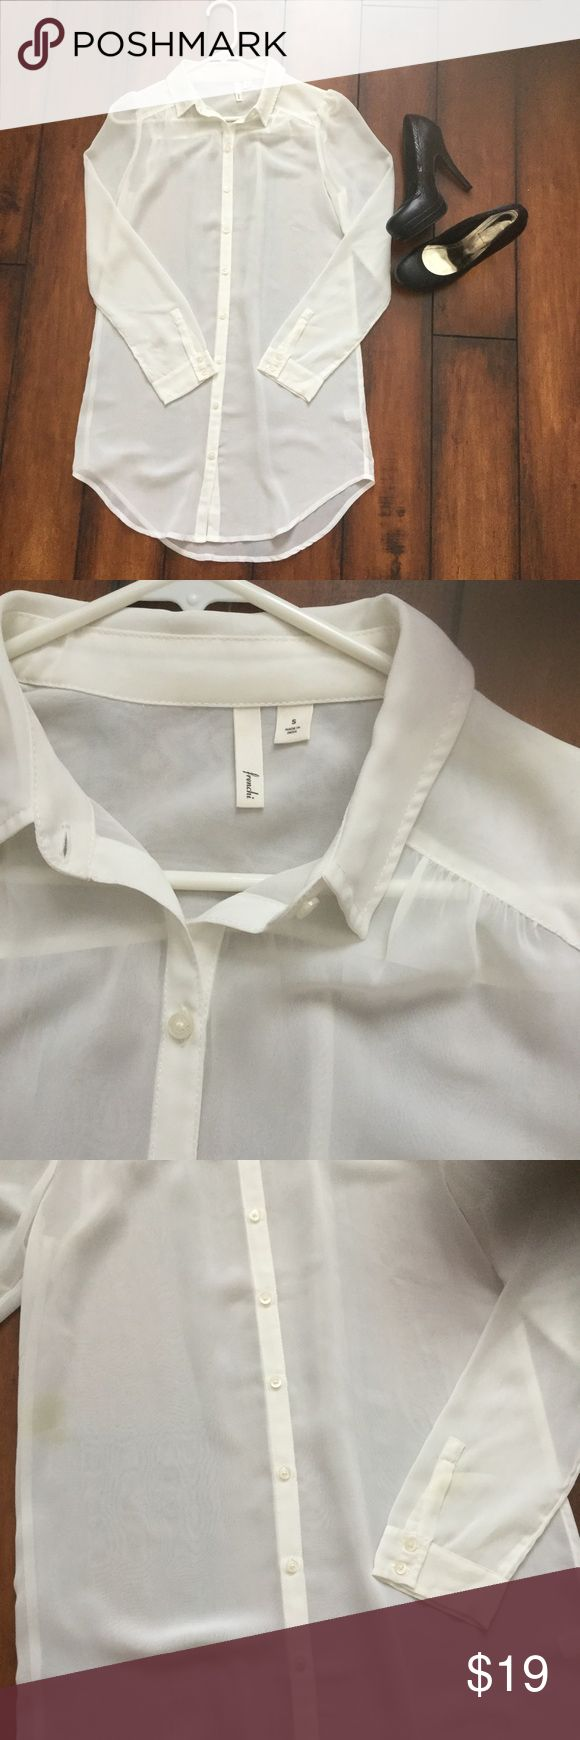 Frenchi blouse Frenchi blouse. White colored. Good condition, has a slight spill pictured in the last pic. Can get it out when it's dry cleaned. Barely noticeable. Super cute to wear with leggings and heels Frenchi Tops Blouses